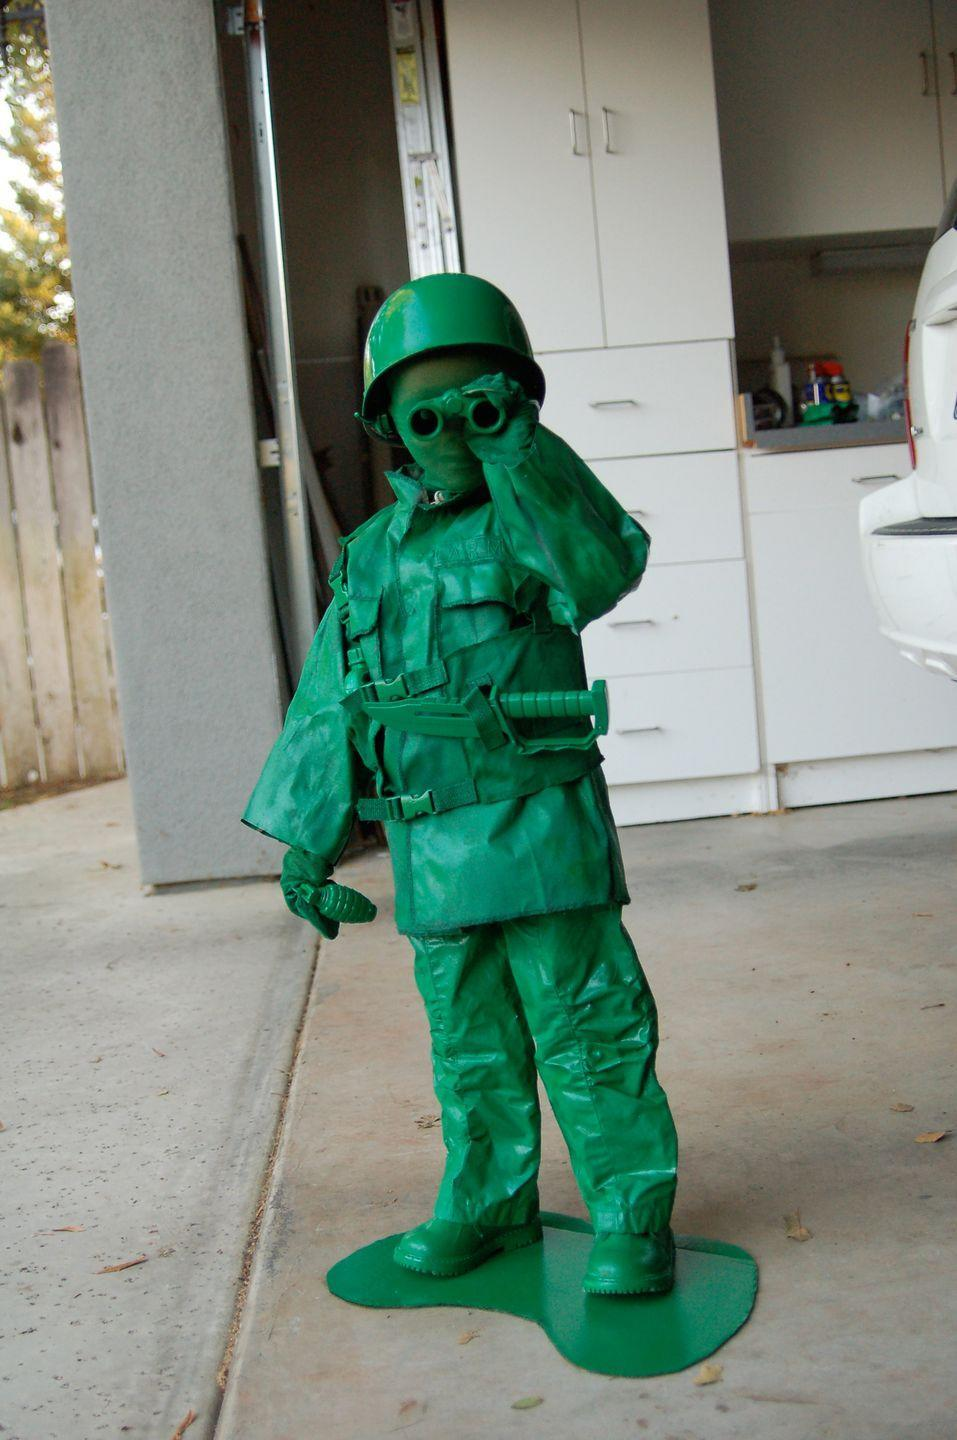 """<p>This toy Army man costume involves LOTS of green spray paint.</p><p><strong>Get the tutorial at <a href=""""http://wildinkpress.com/blog/2011/11/01/a-bit-of-halloween-eye-candy/"""" rel=""""nofollow noopener"""" target=""""_blank"""" data-ylk=""""slk:Wild Ink Press"""" class=""""link rapid-noclick-resp"""">Wild Ink Press</a>.</strong></p>"""